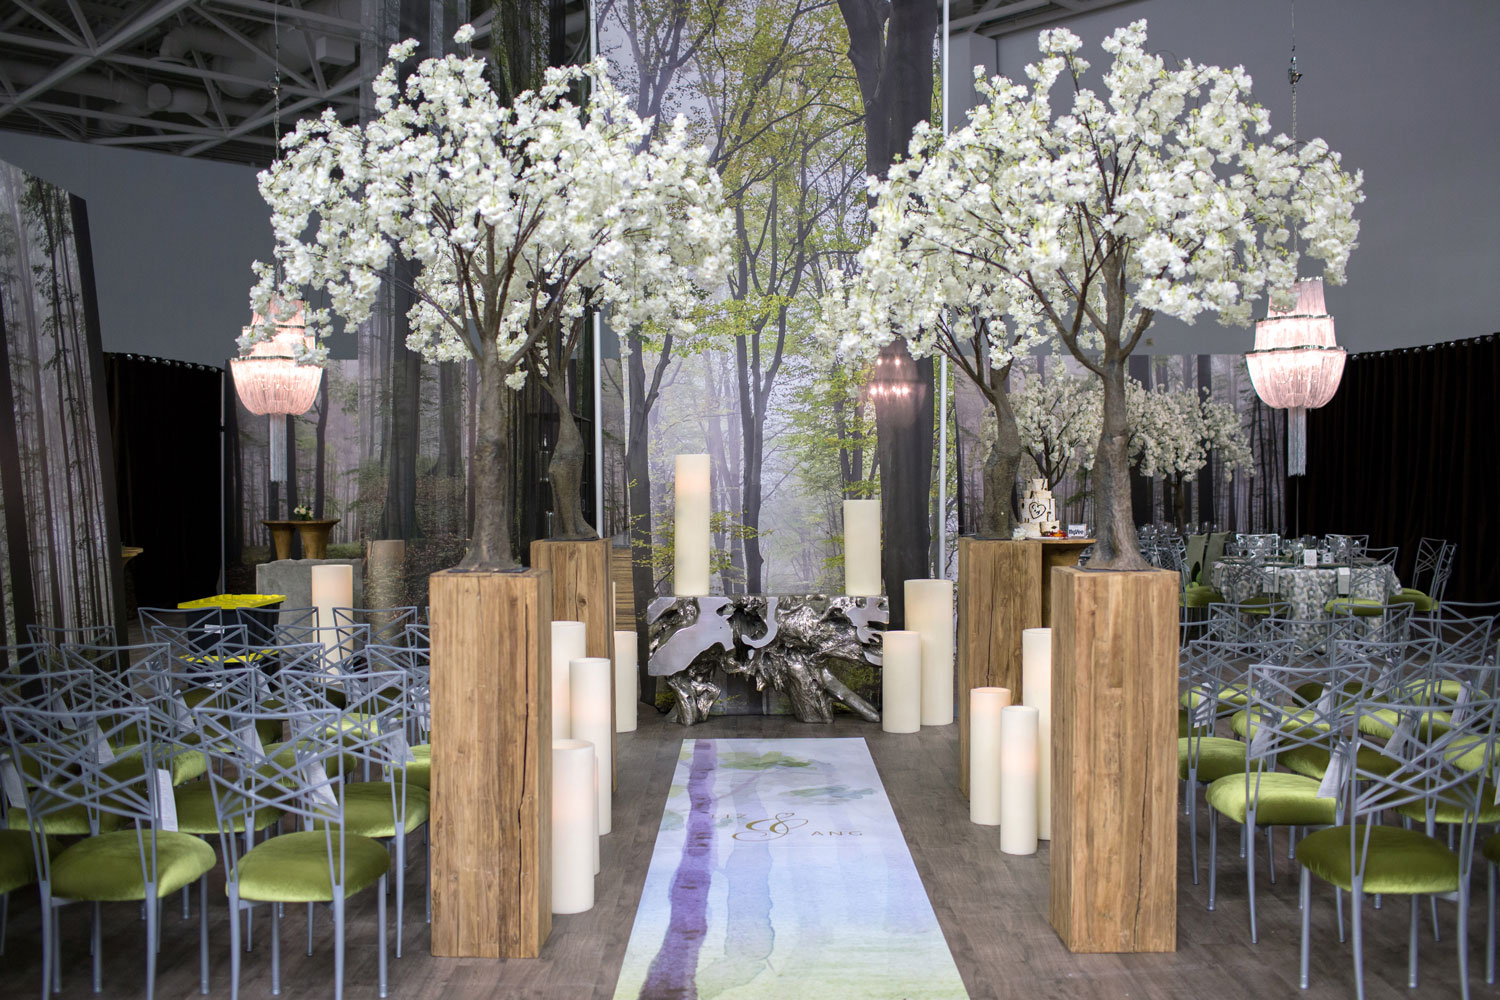 UNVEILED - The Ultimate Wedding Planning Event by The Wedding Guys in Minnesota - trend experience forest ceremony